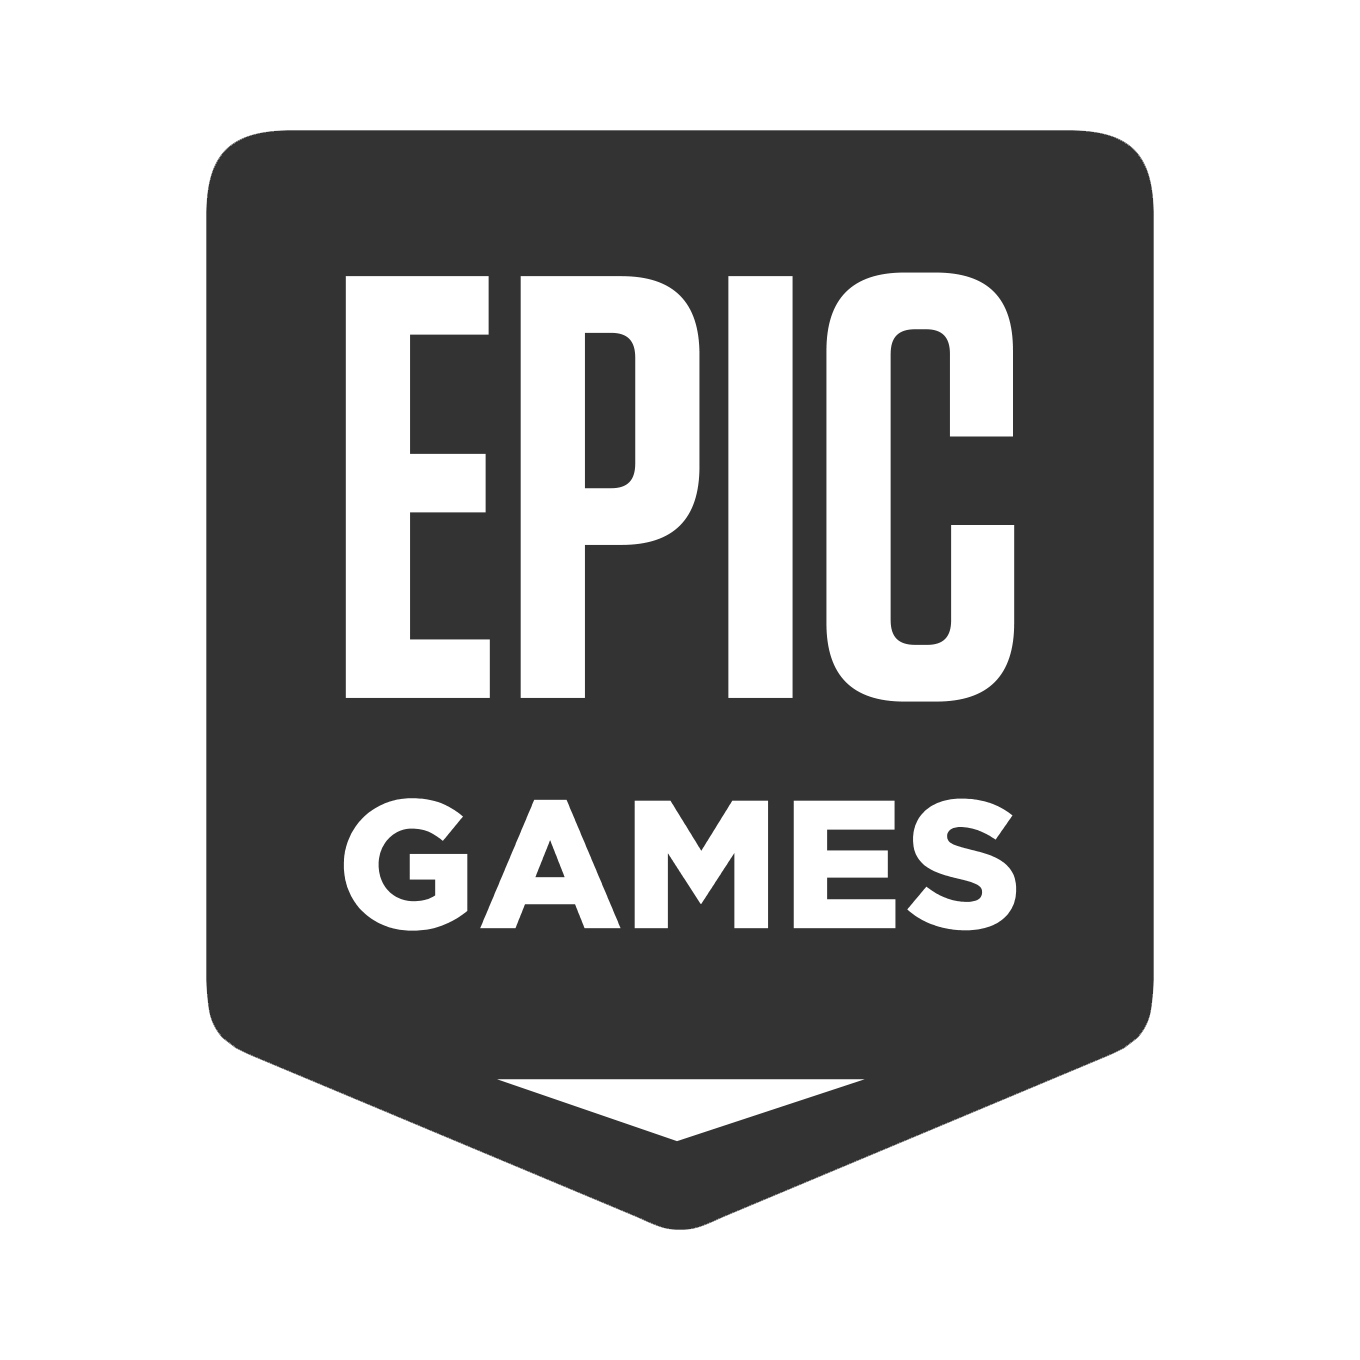 Epic Games Issues Advisory, Shares Security Tips To Protect Account